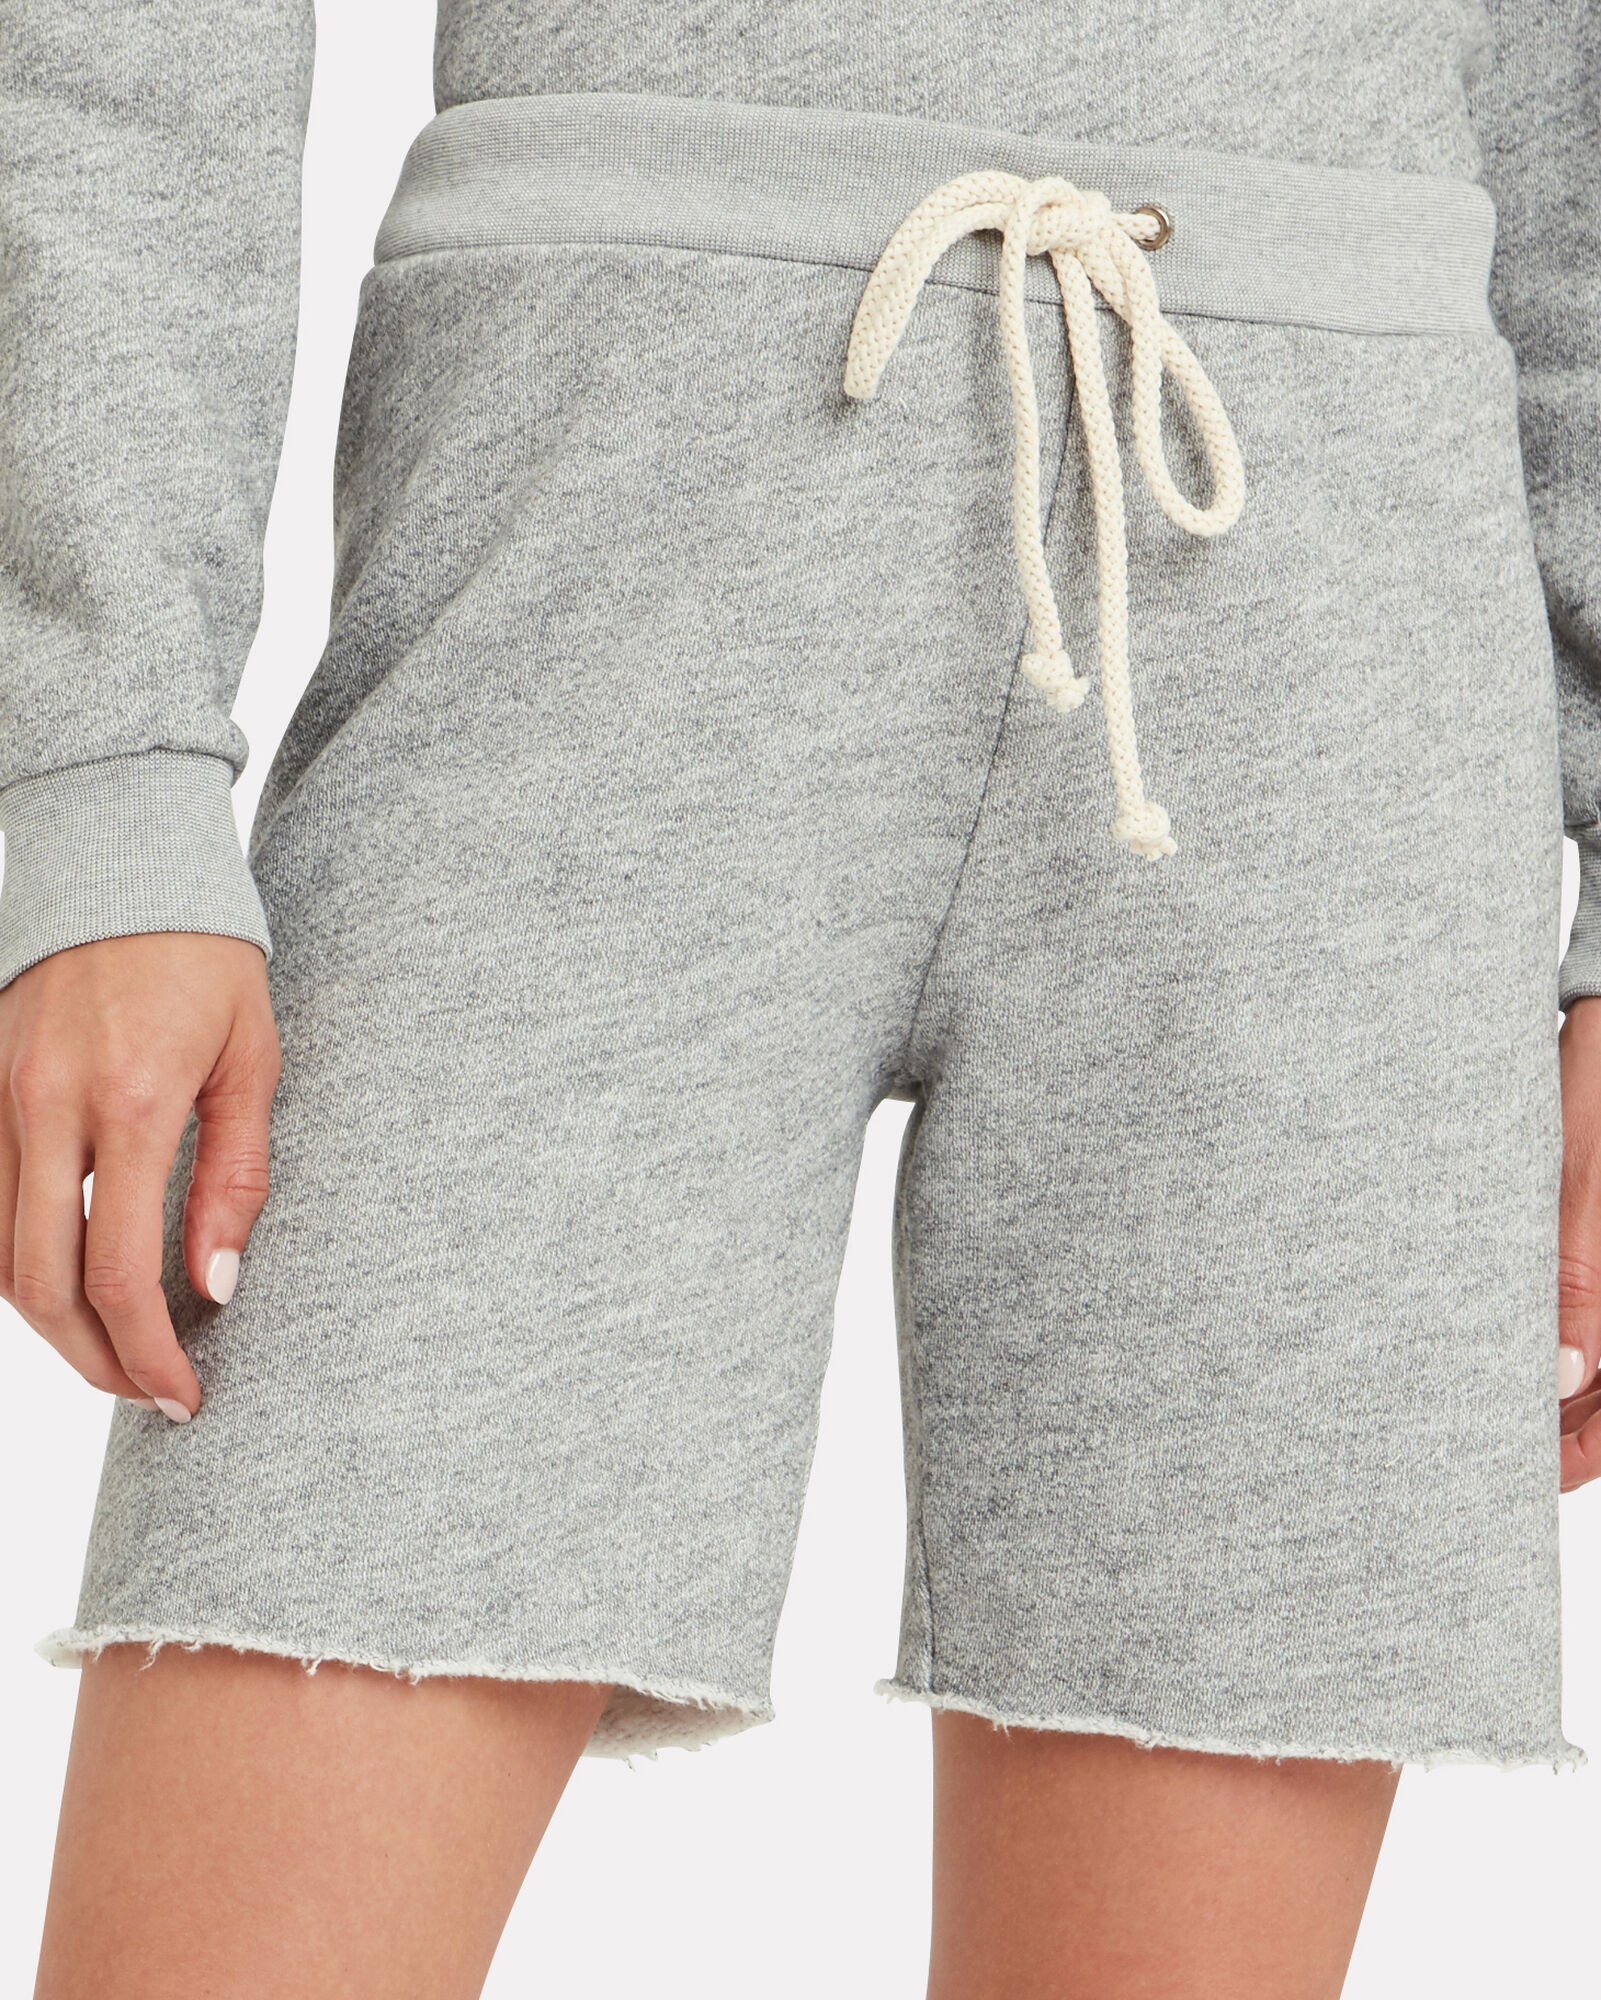 70s Terry Cotton Sweatshorts, GREY-LT, hi-res